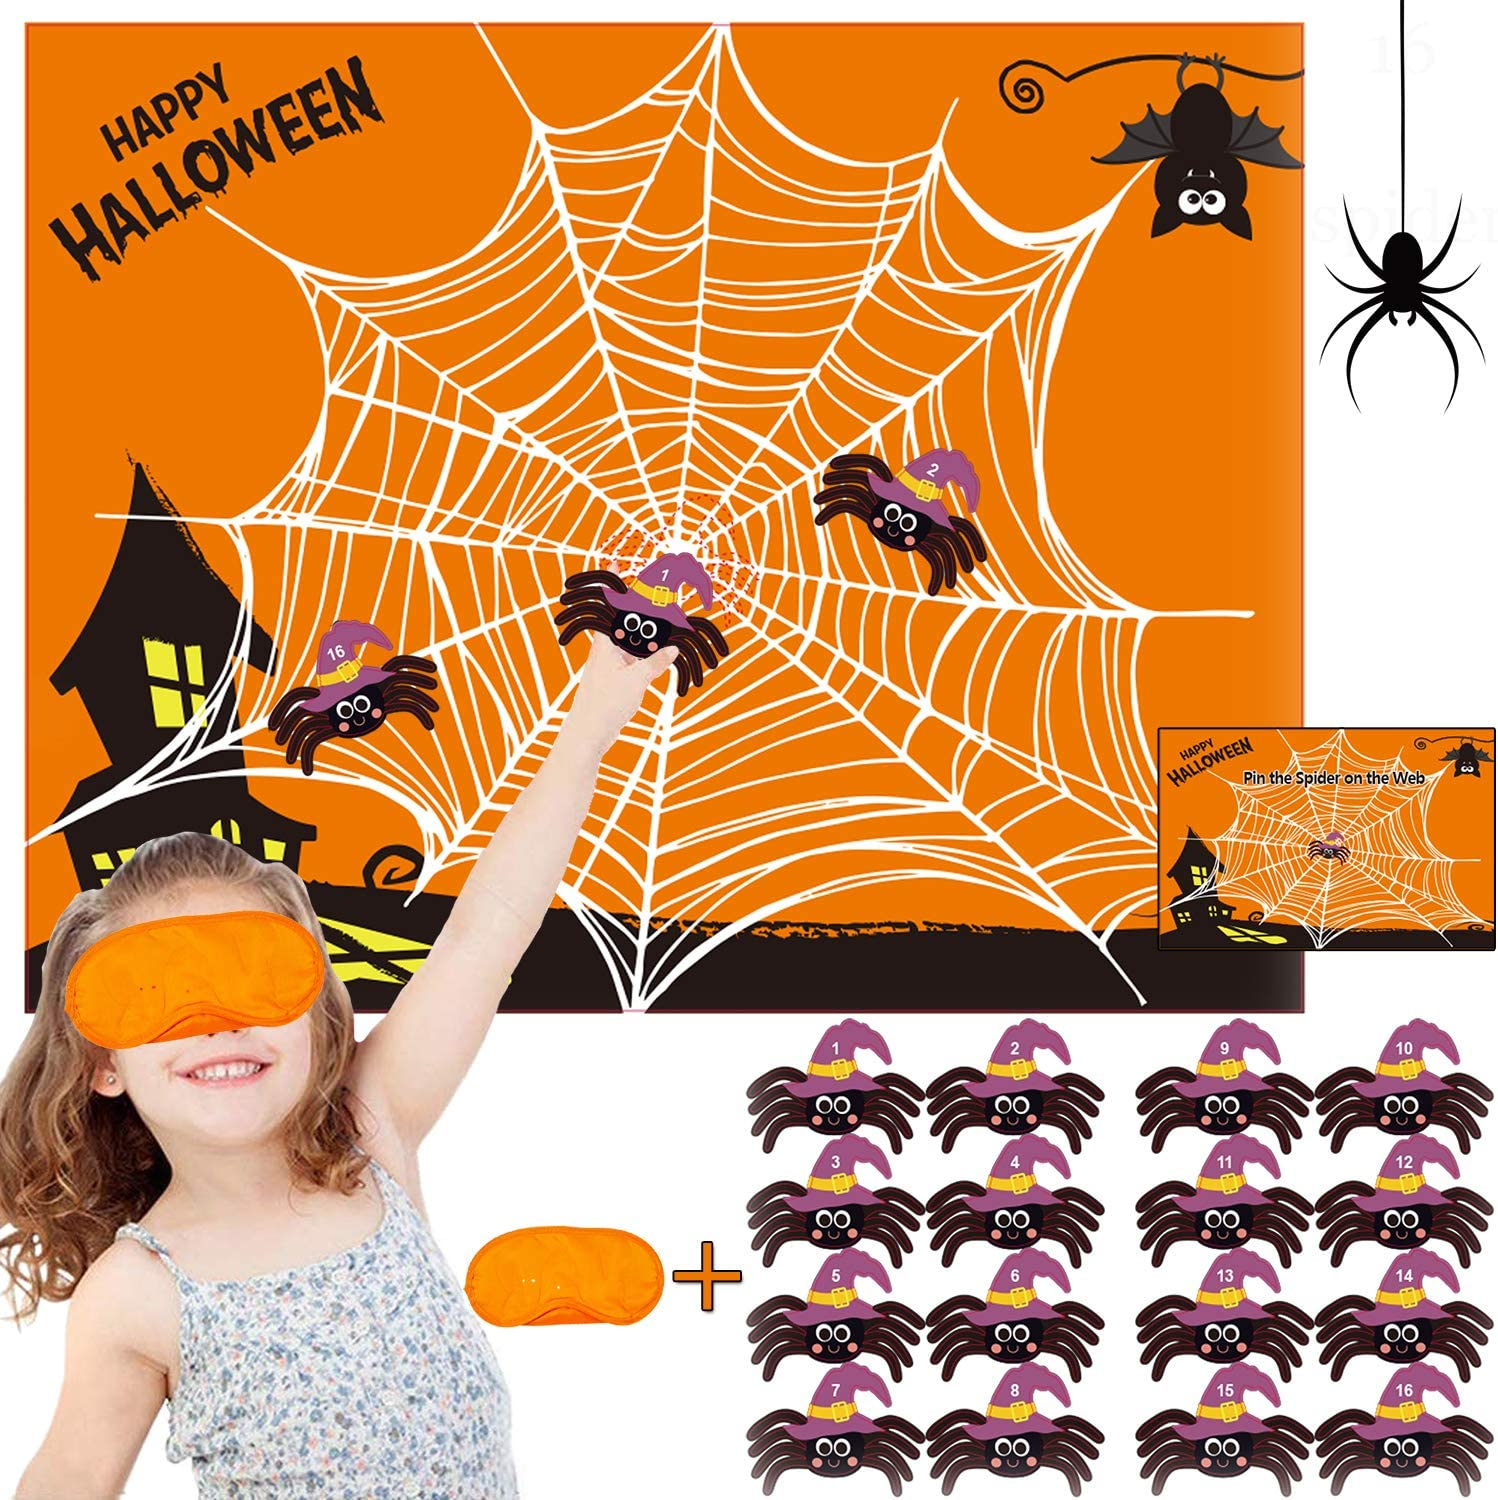 Funnlot Halloween Party Games for Kids Pin The Spider on The Web Game  Halloween Party Favors and Games Halloween Halloween Party Games Activities  ...